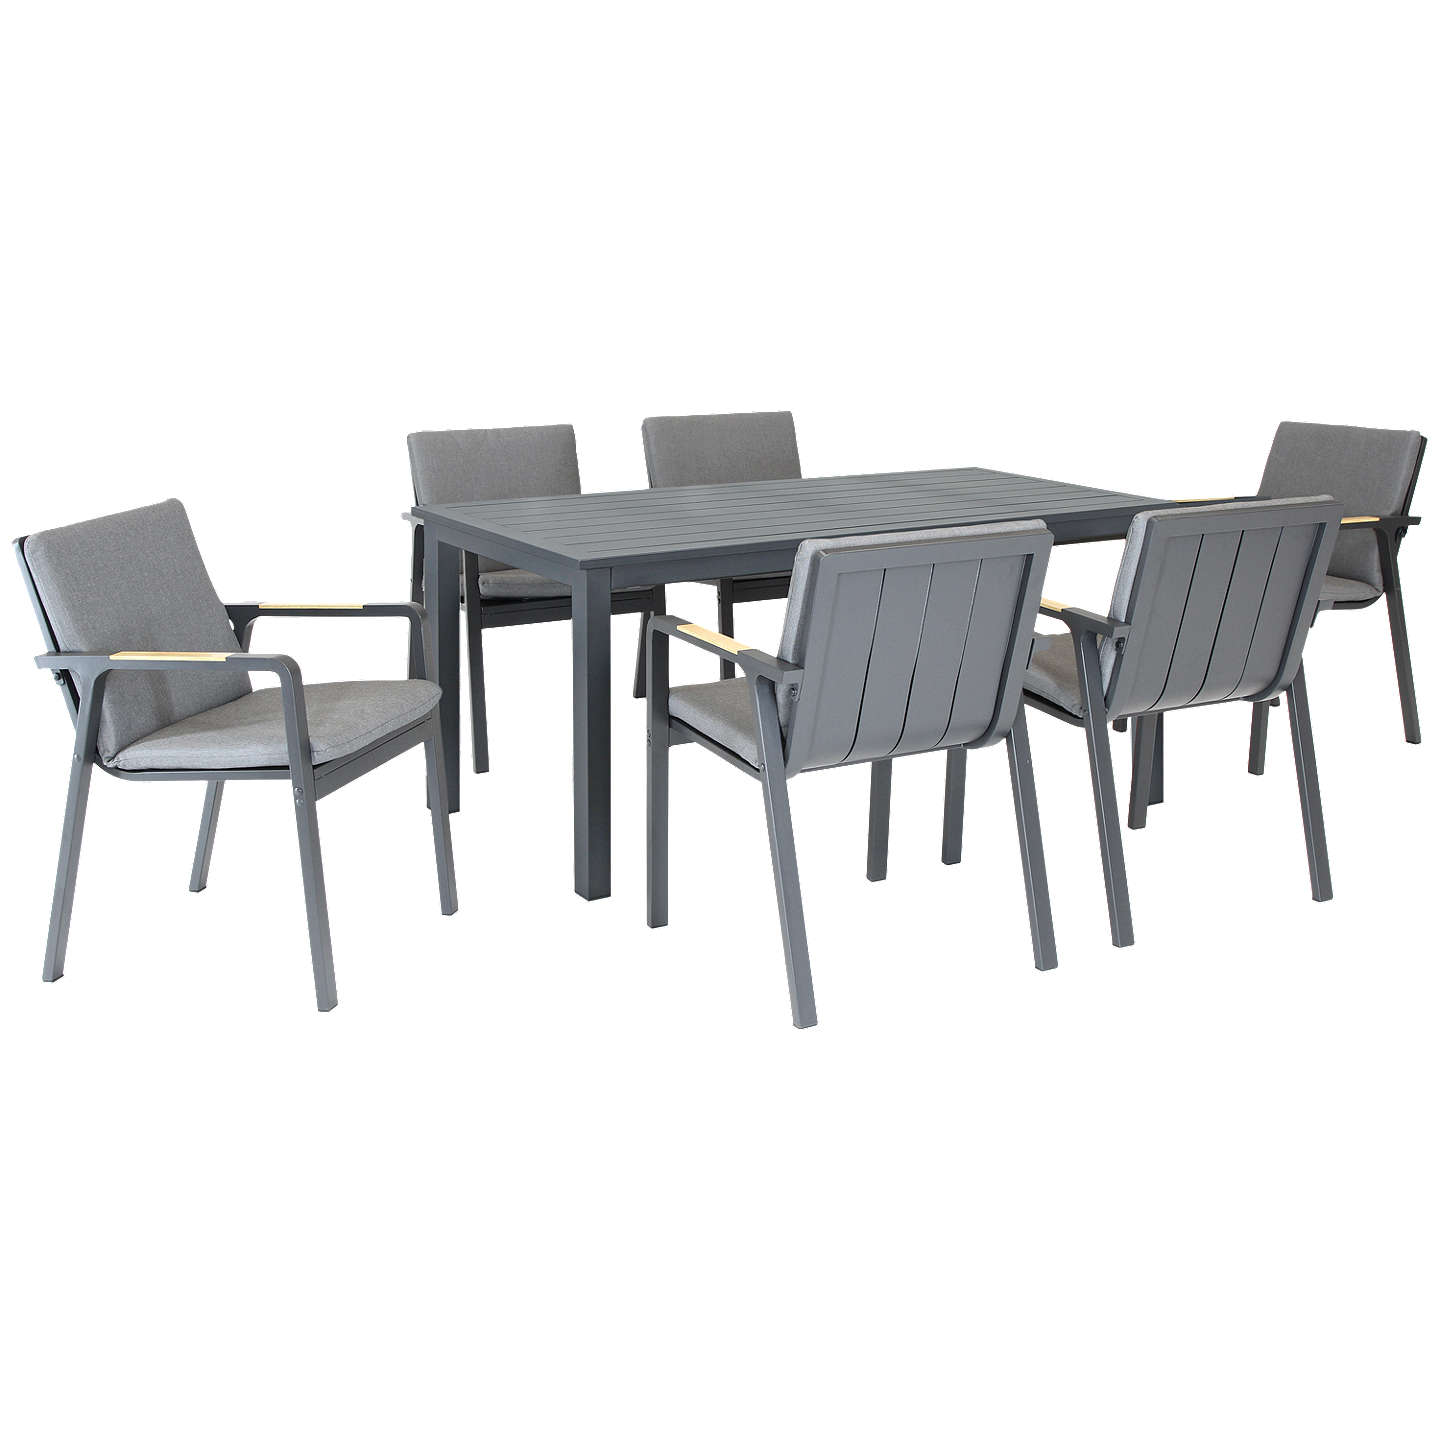 Kettler Paros 8 Seater Garden Dining Table And Chairs Set Grey